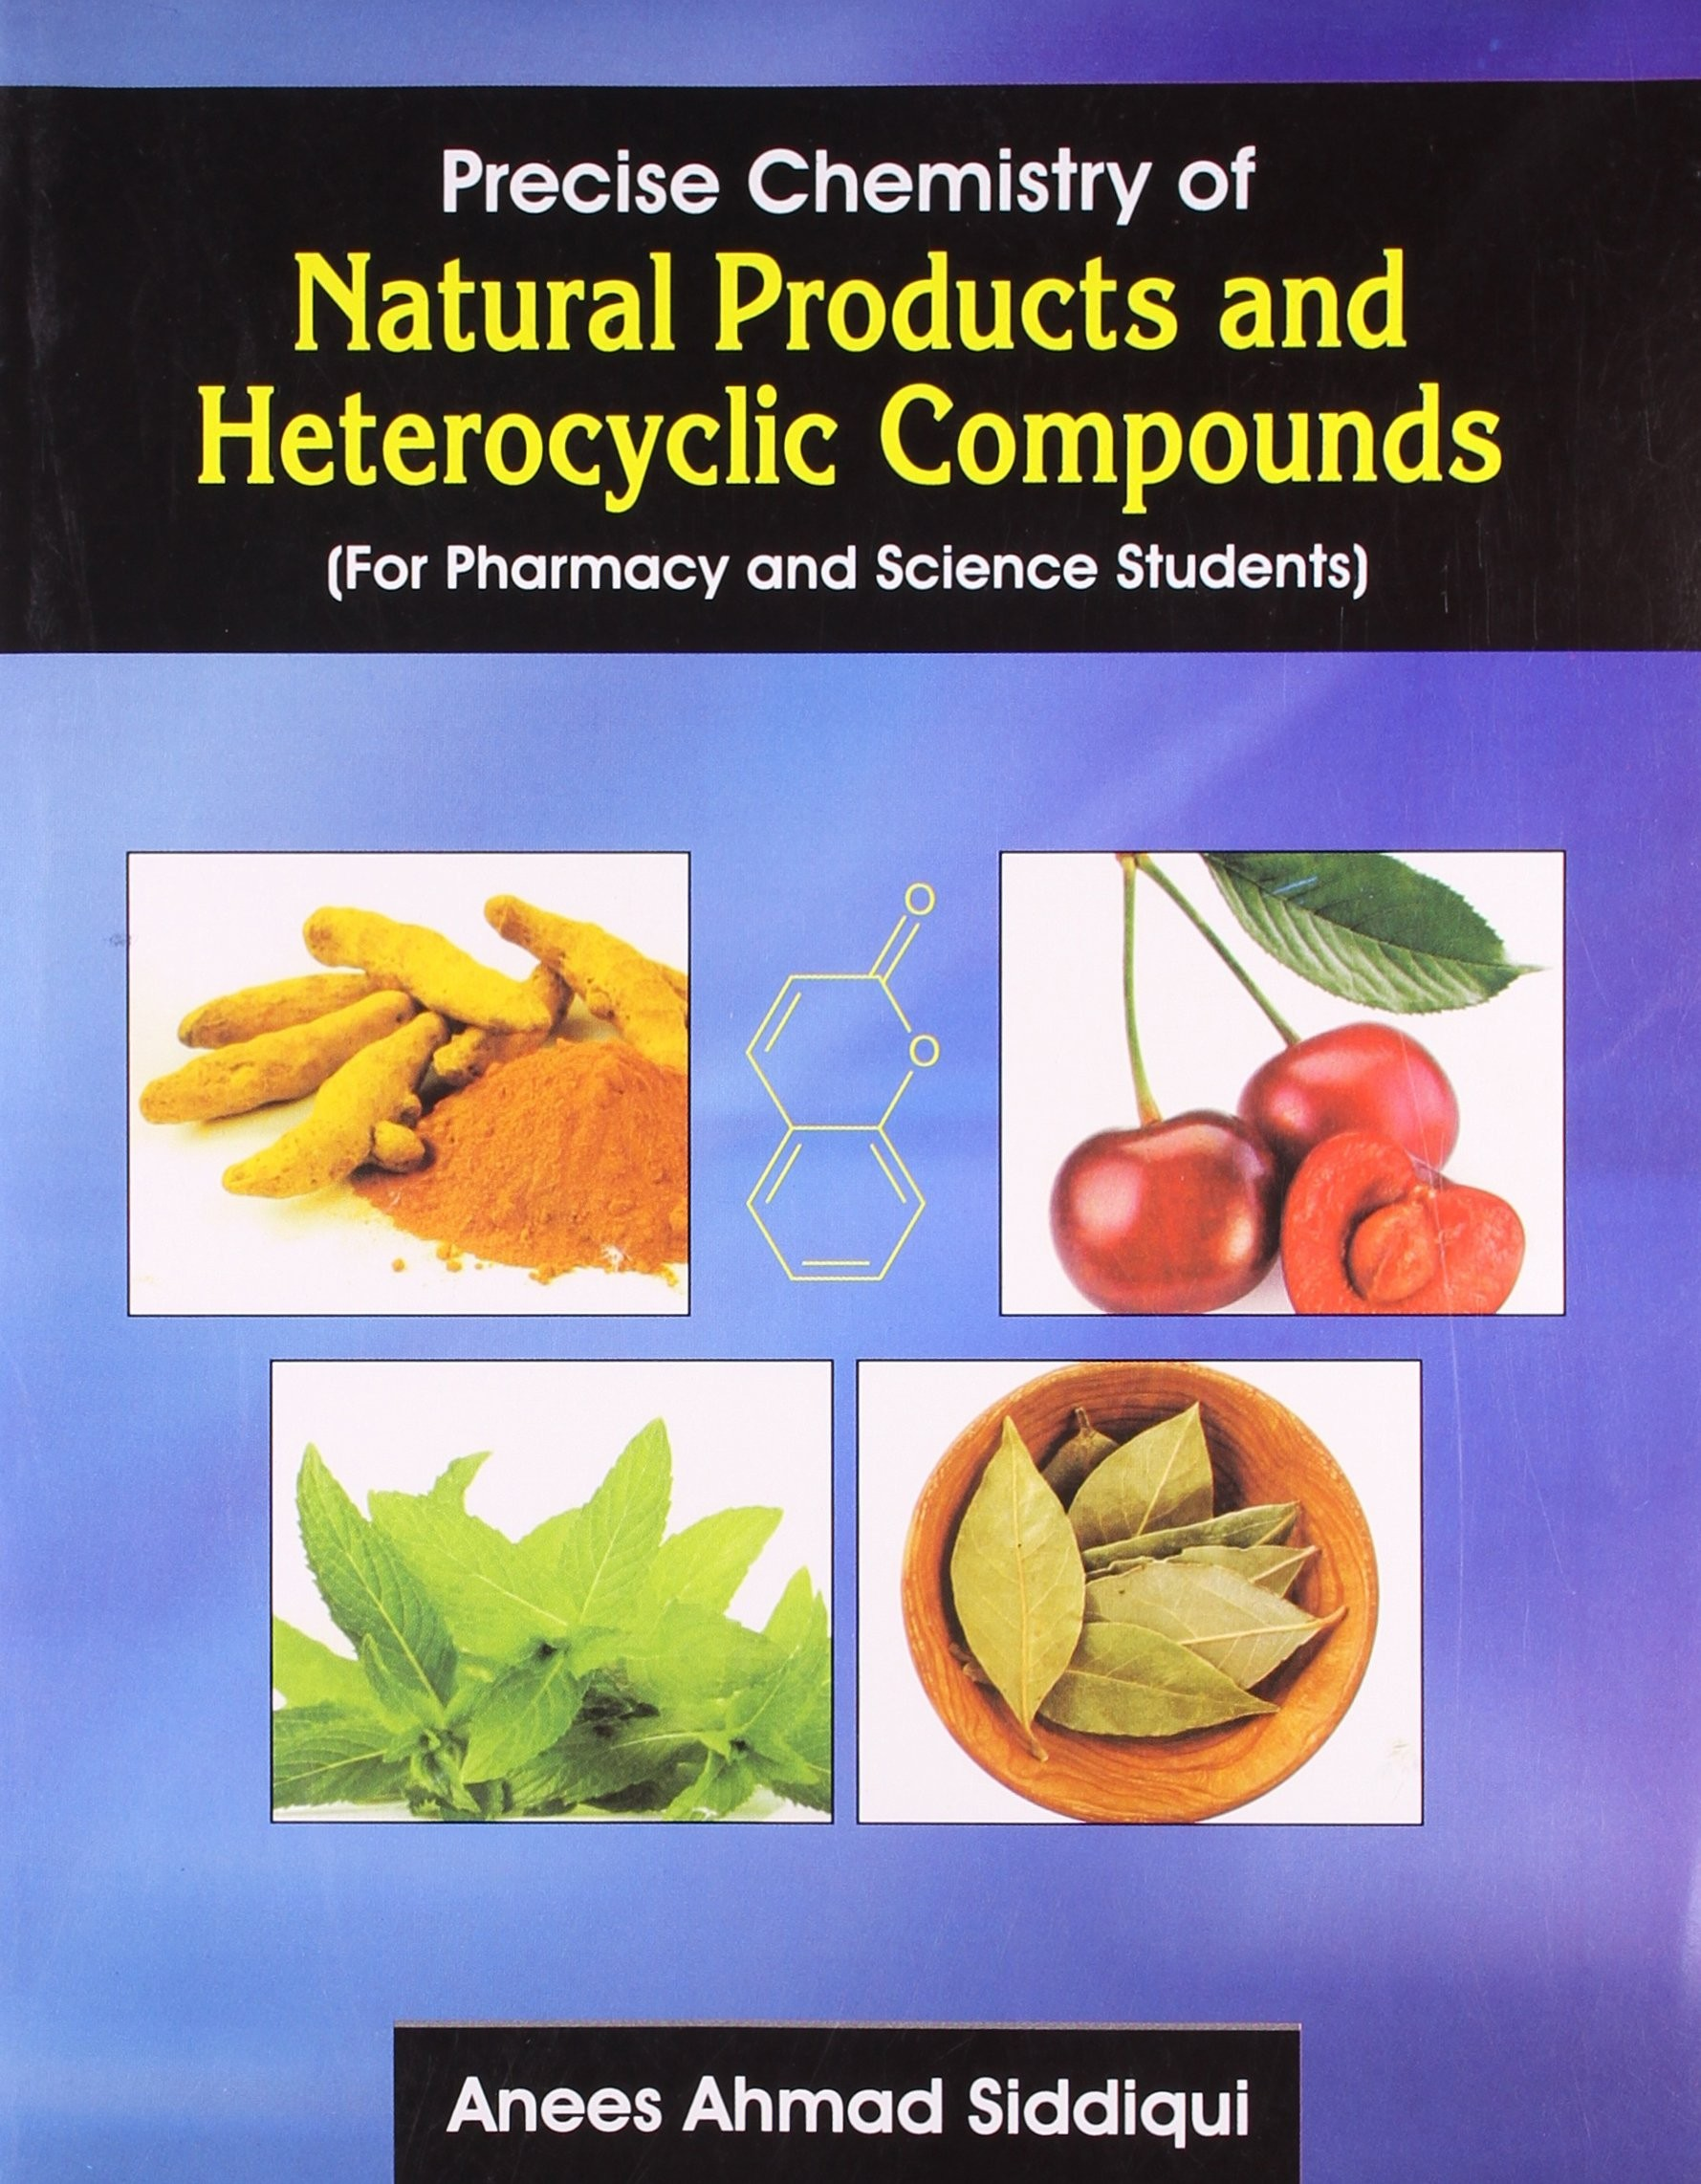 Precise Chemistry Of Natural Products And Heterocyclic Compounds : For Pharmacy & Science Students